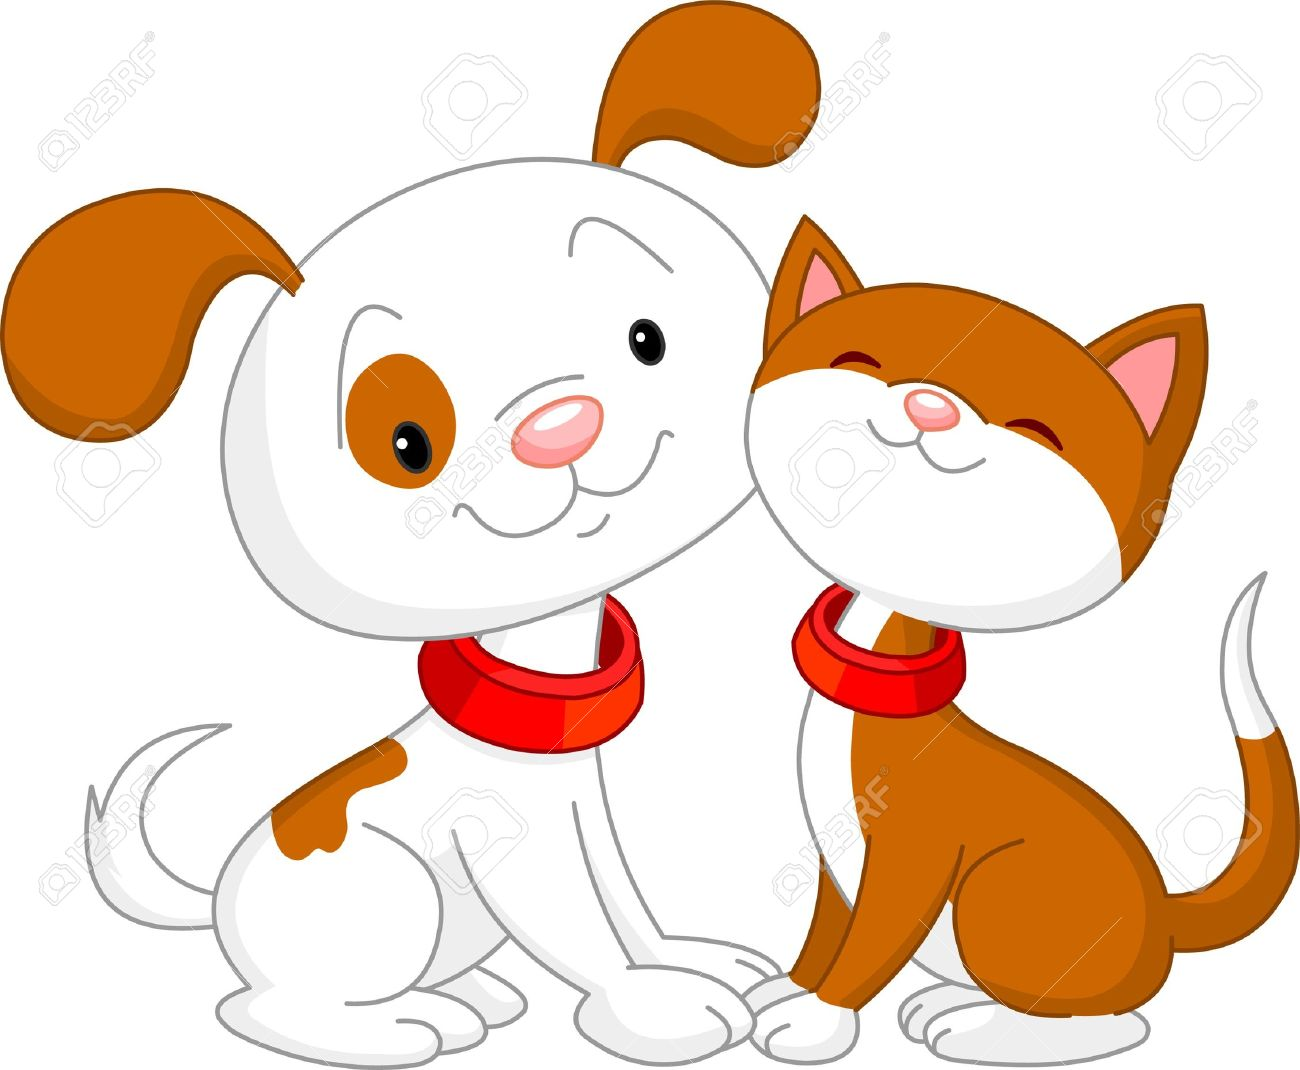 Cute Cat And Dog Sitting Together Royalty Free Cliparts Vectors And Stock Illustration Image 9782514